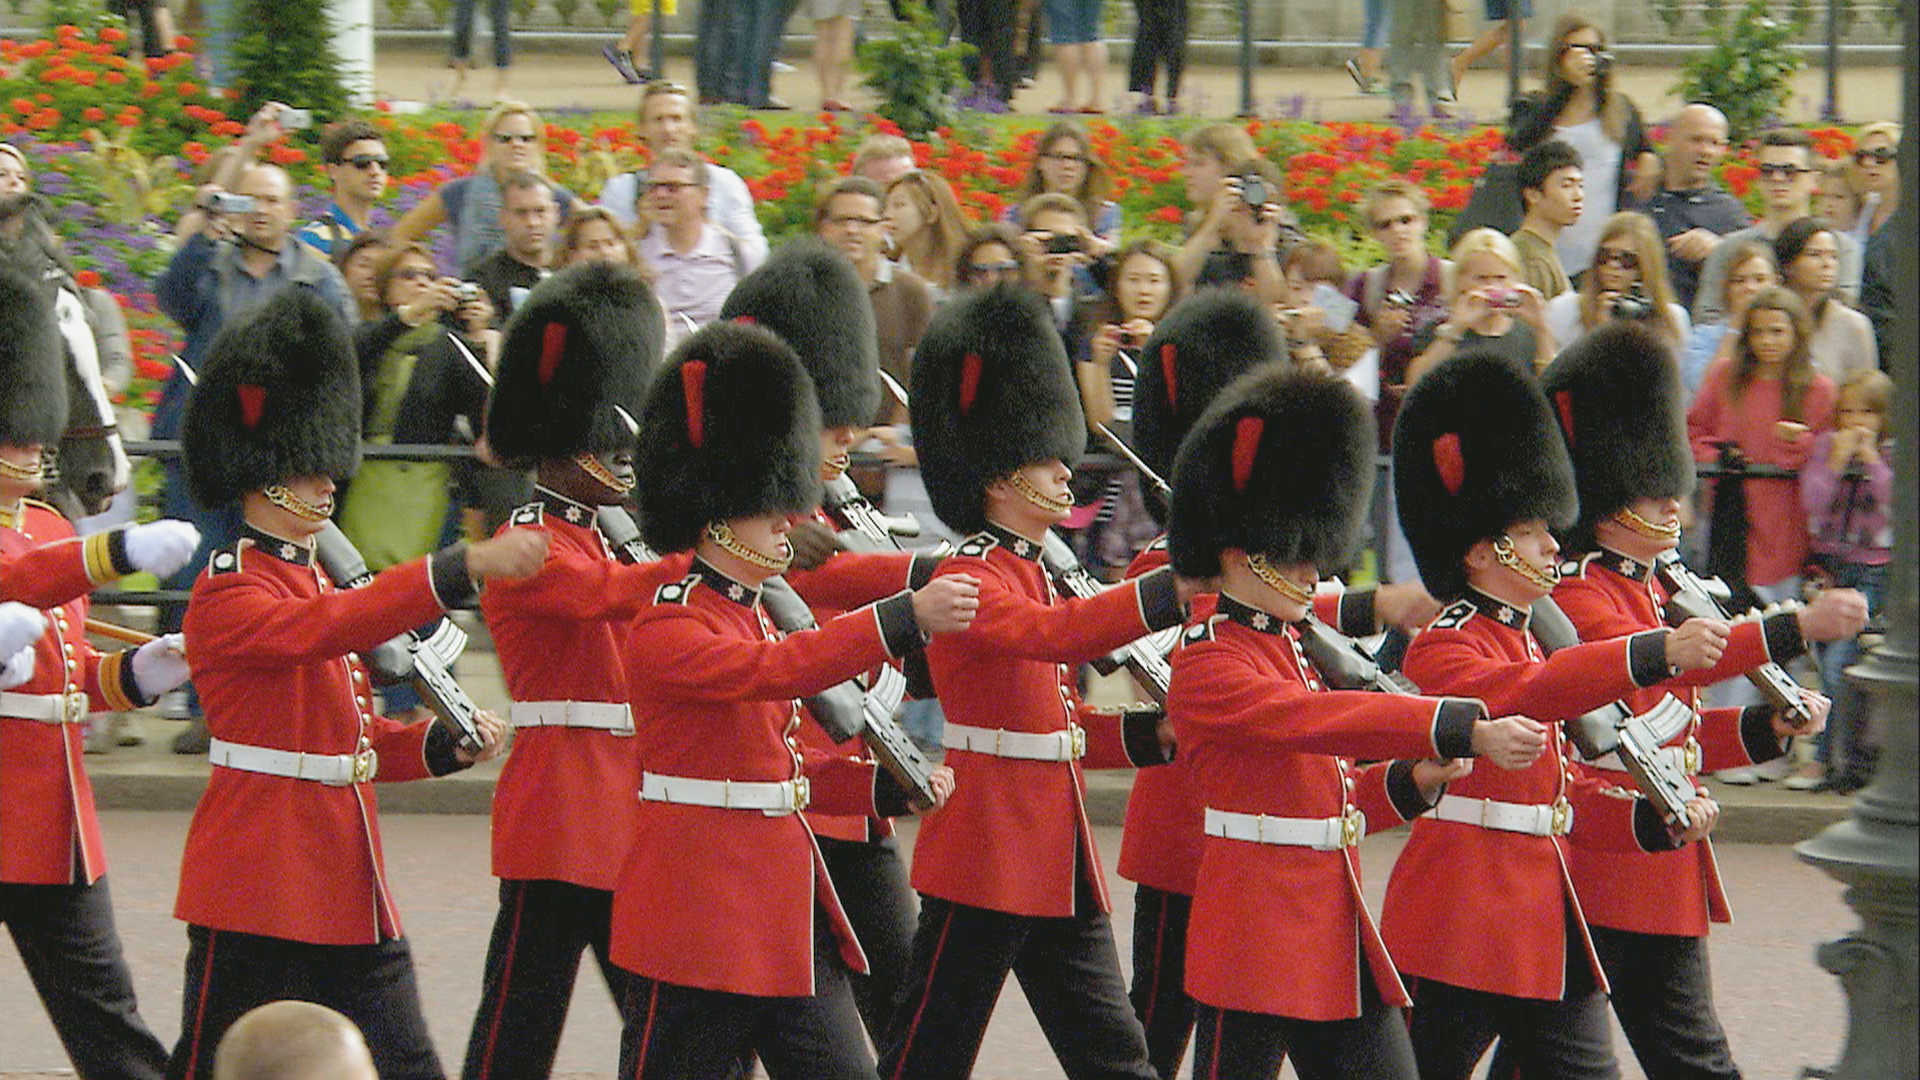 London: Changing of the Guards